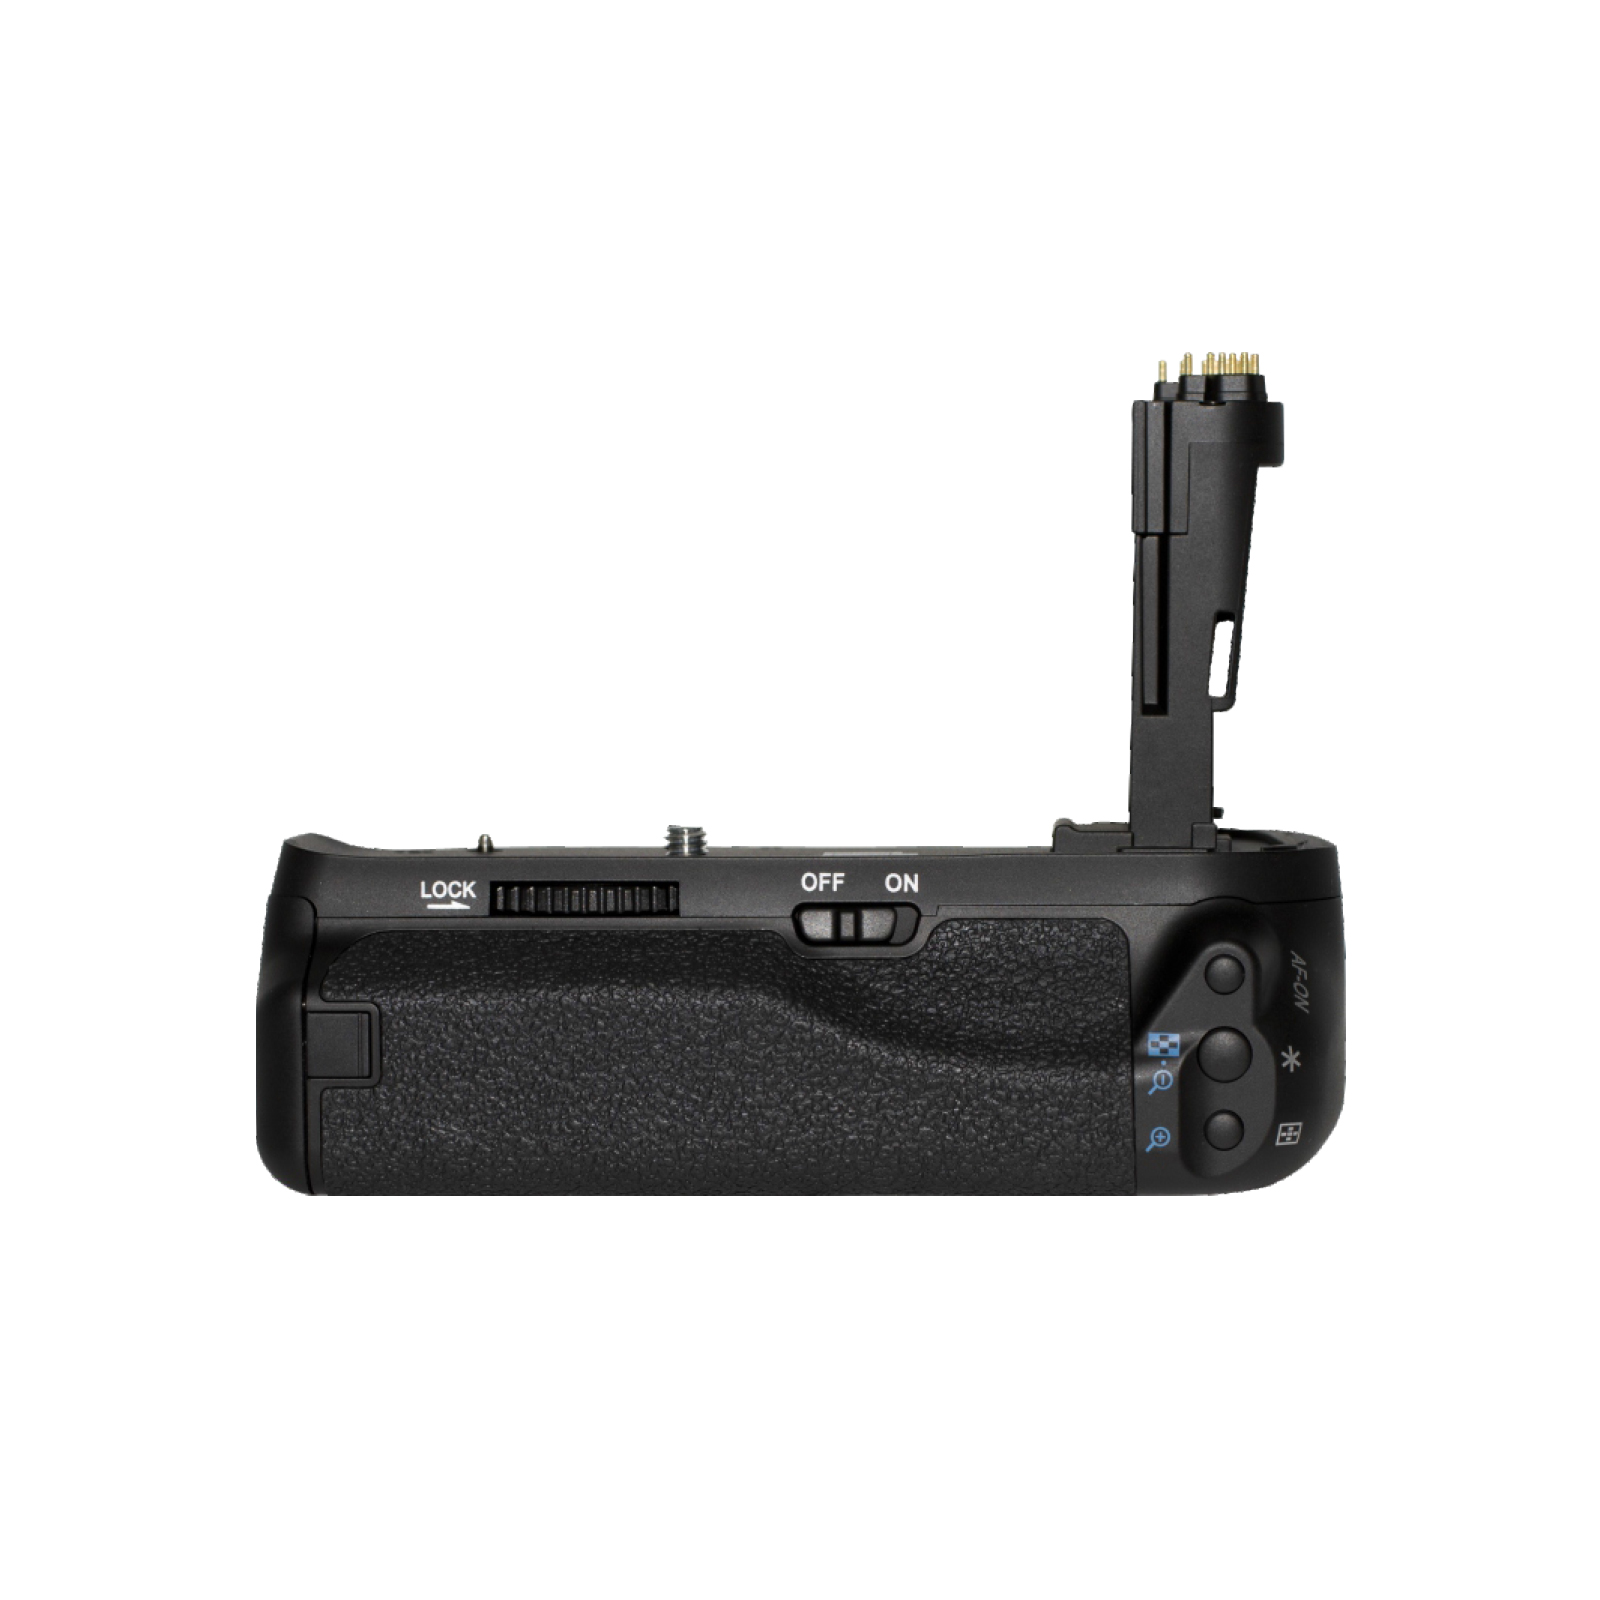 Pixel Vertax E21 Battery grip For Canon 6D Mark II, powerful endurance and arbitrary operation.